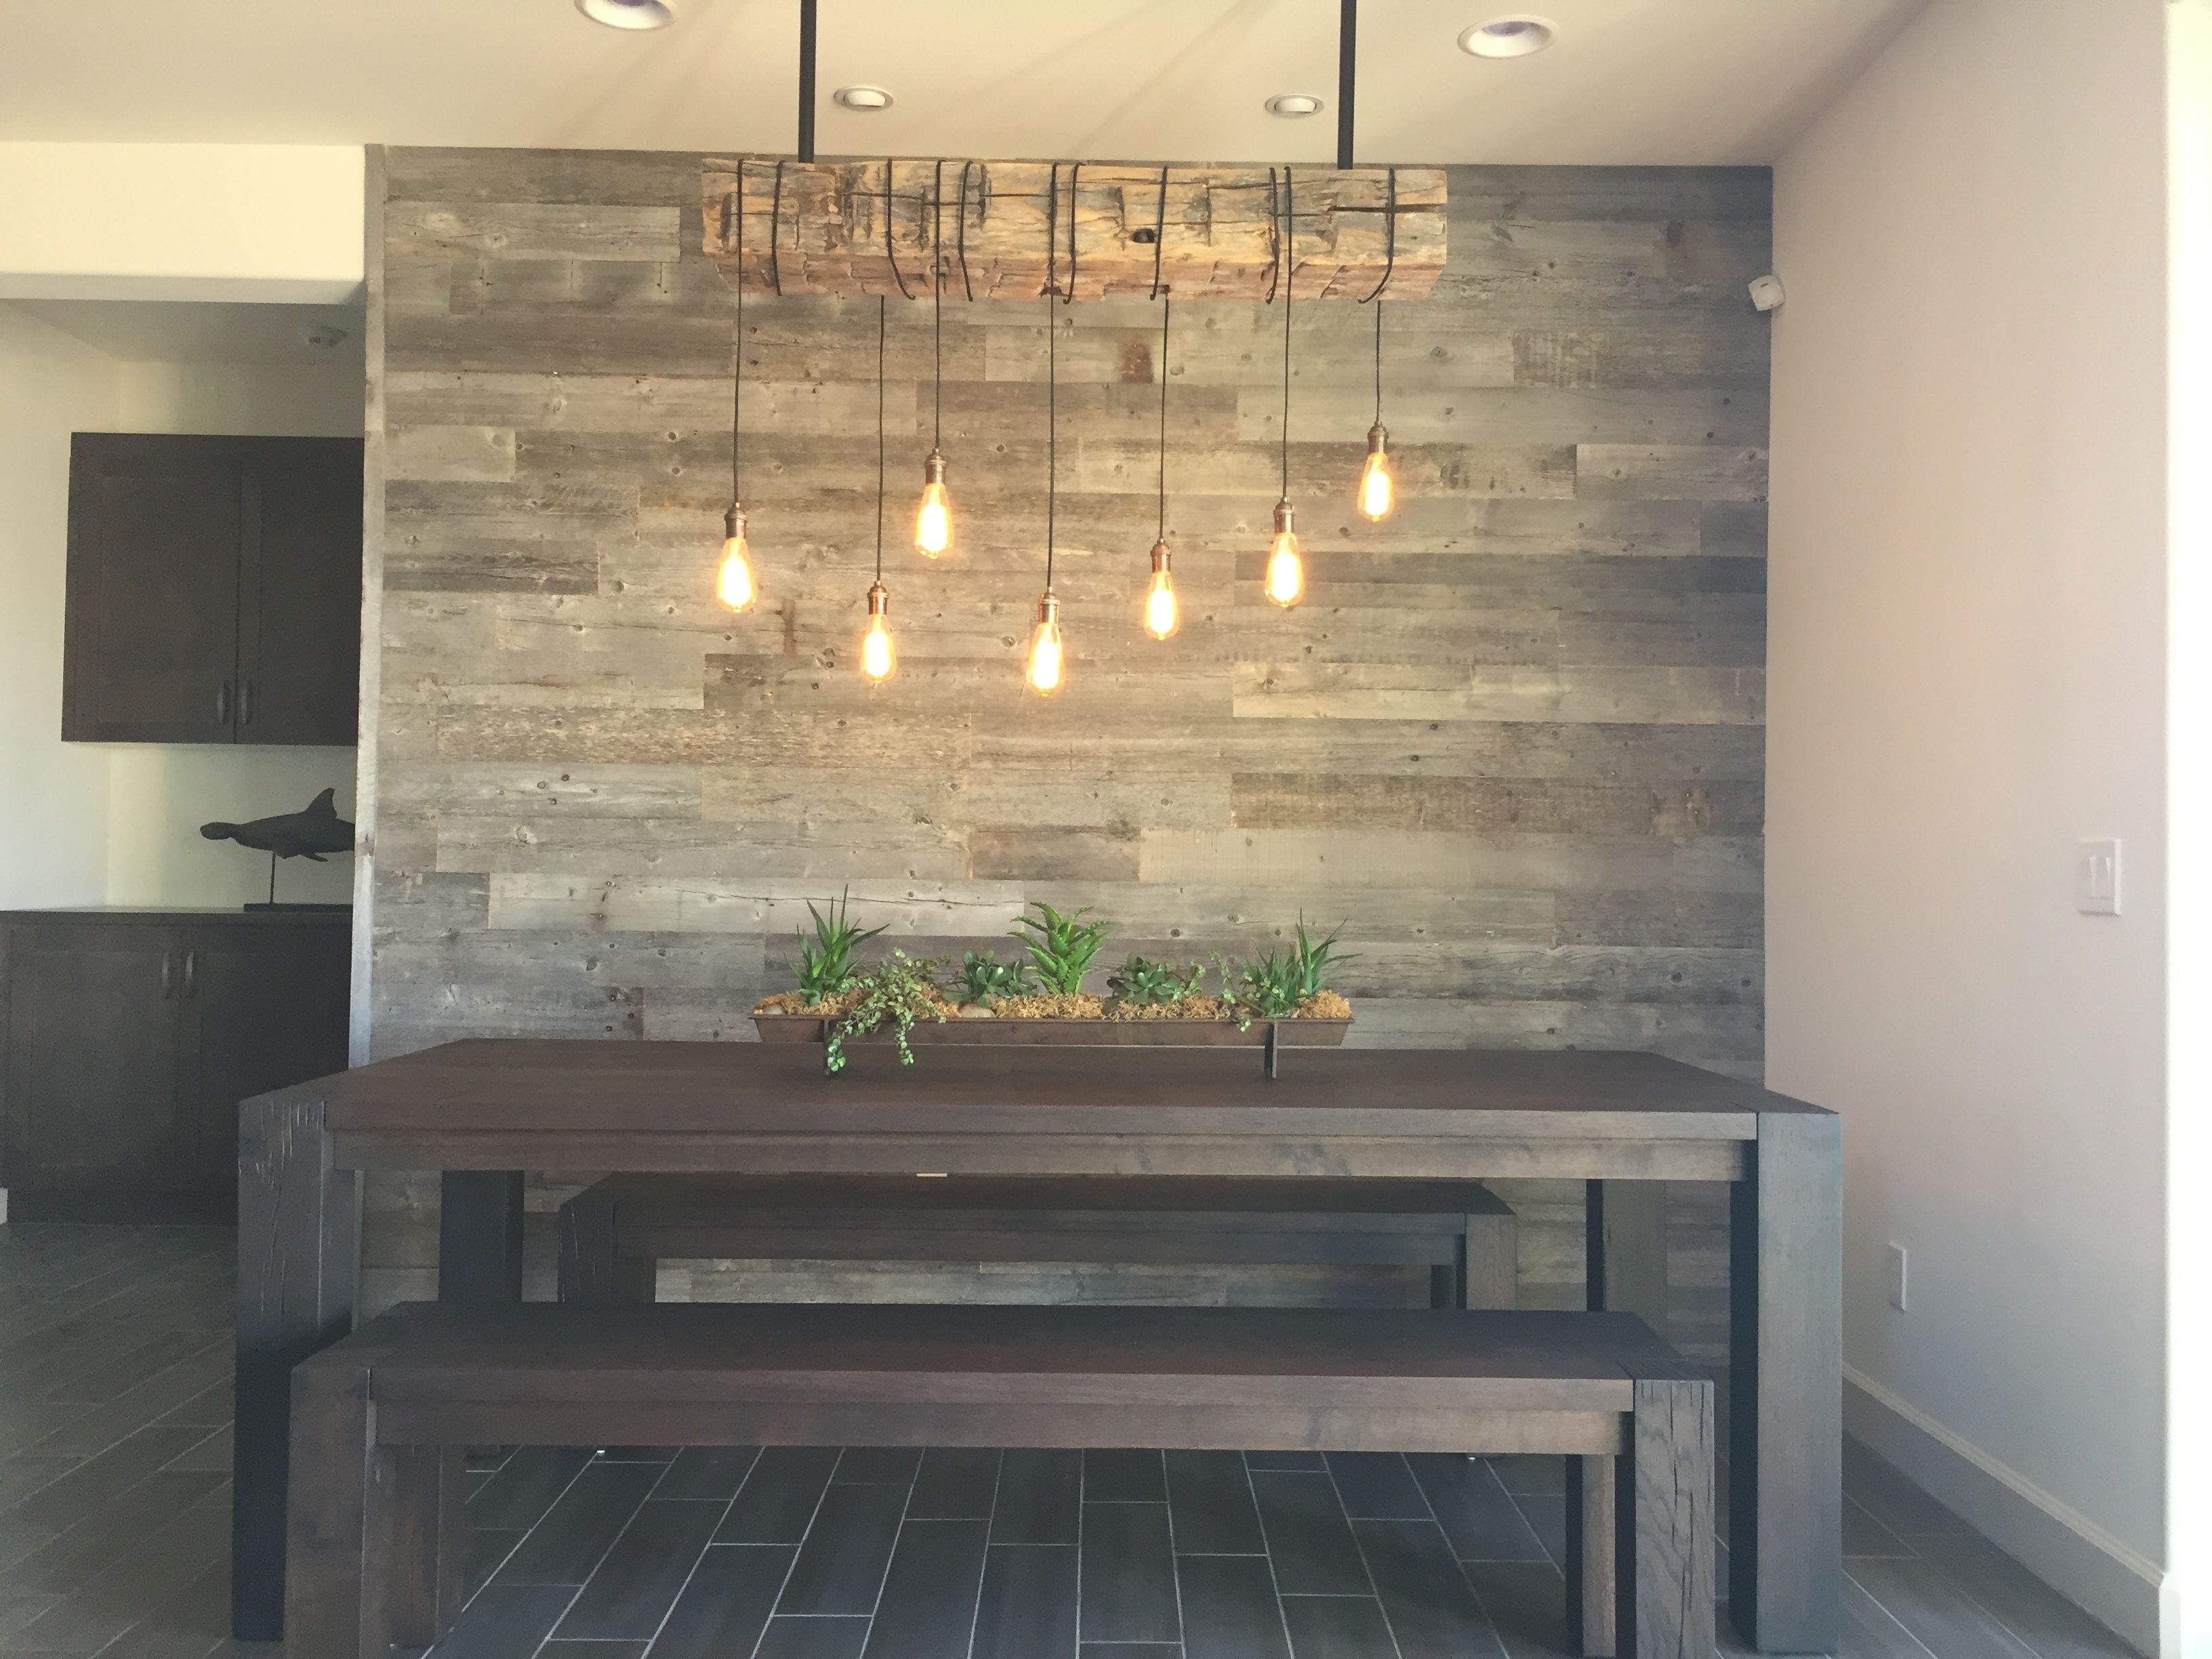 Wall With Reclaimed Wood Wall Accents (View 13 of 15)